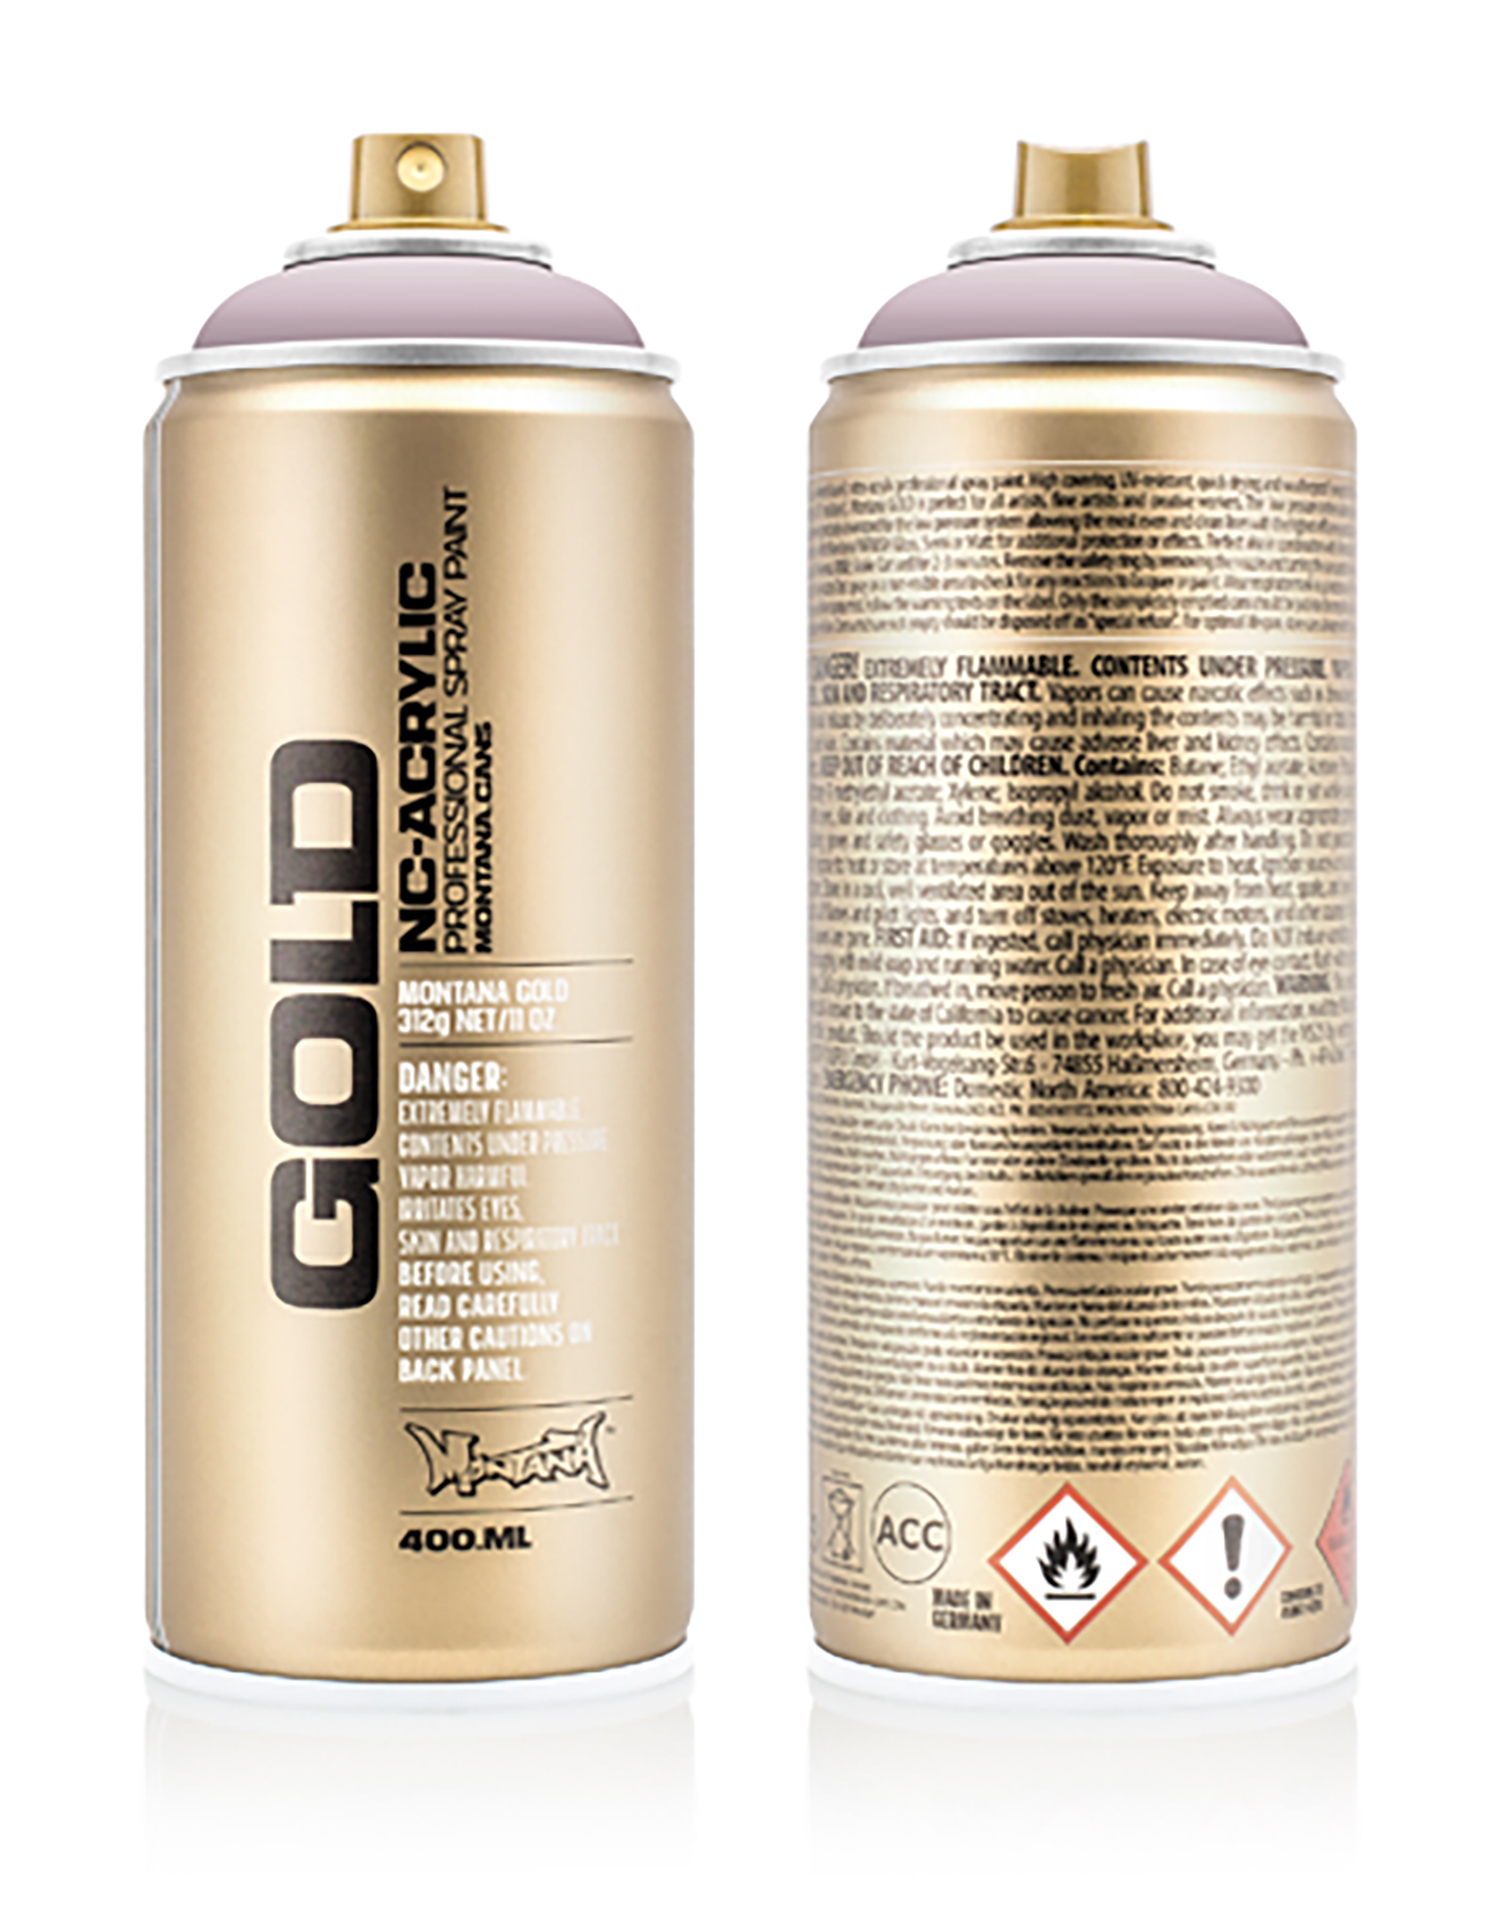 MONTANA-GOLD-SPRAY-400ML-G-8175